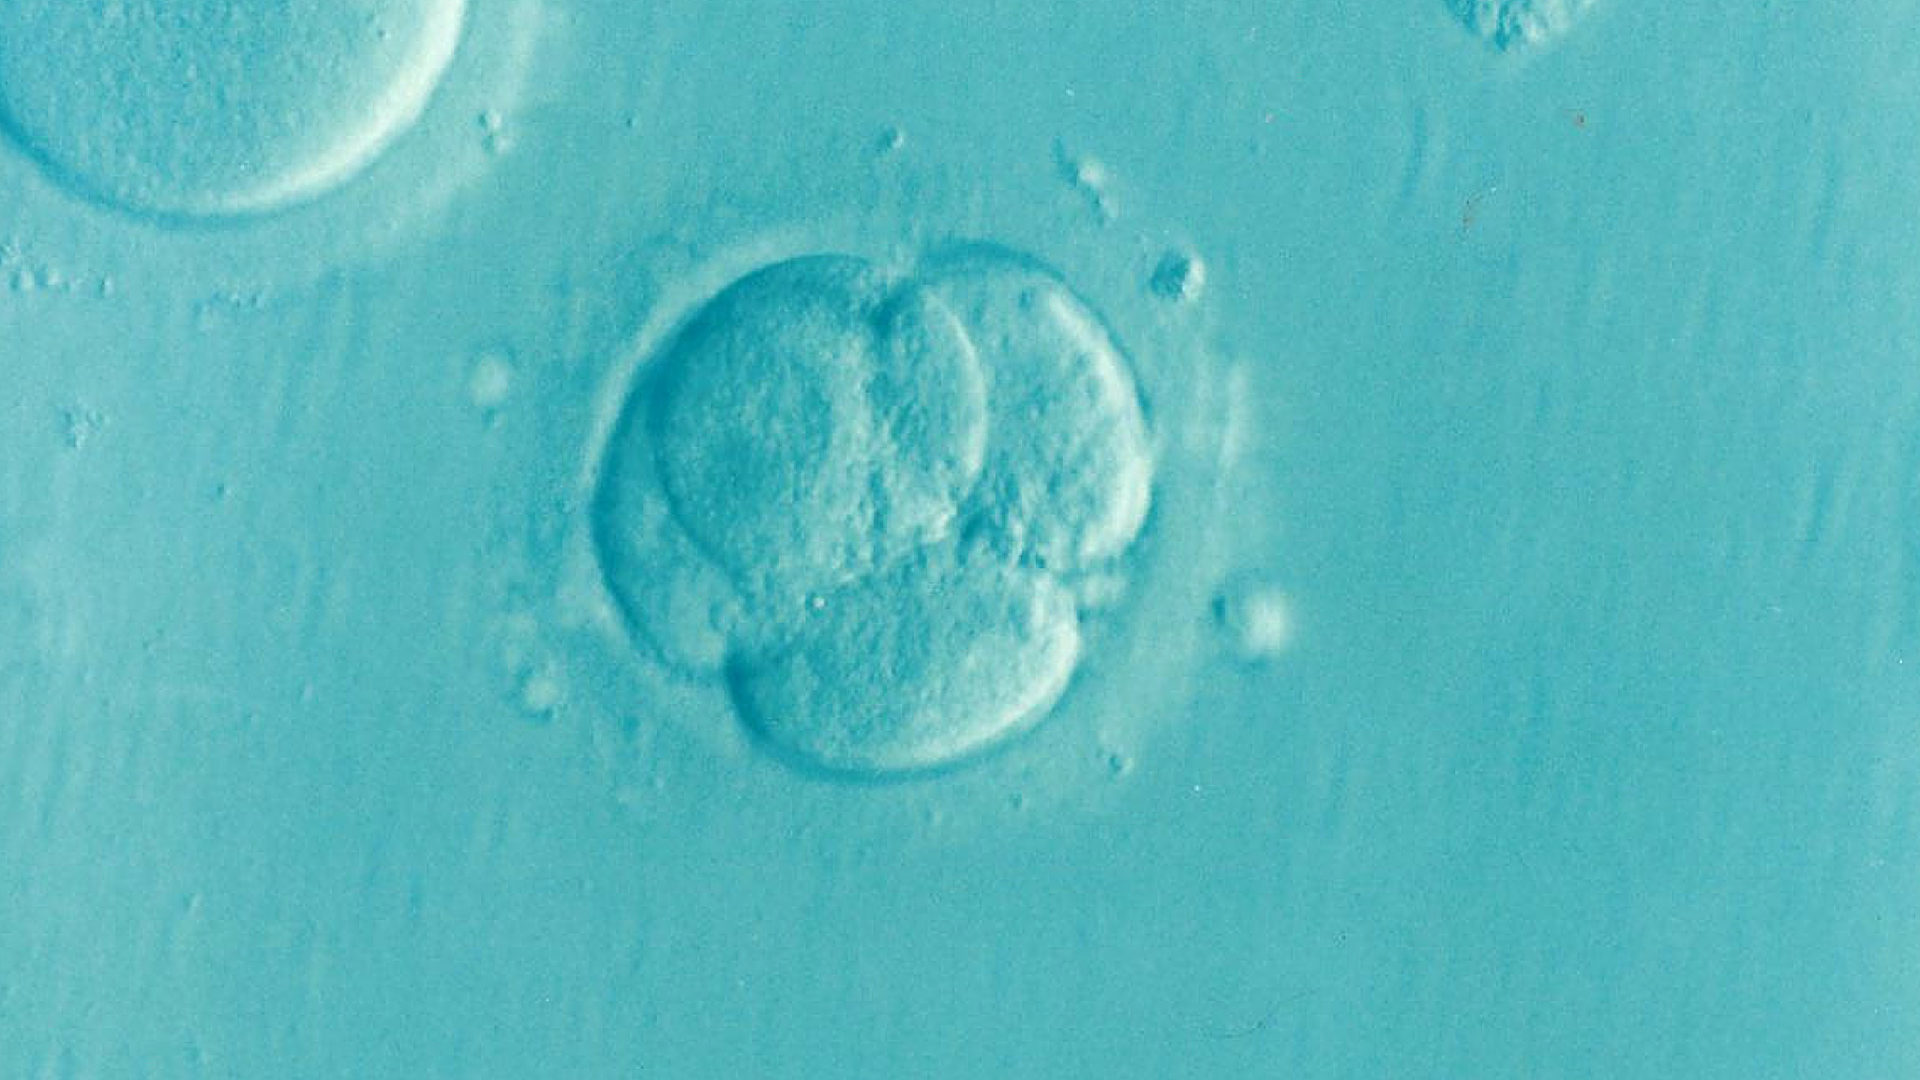 Embryoids Spark Moral Debate